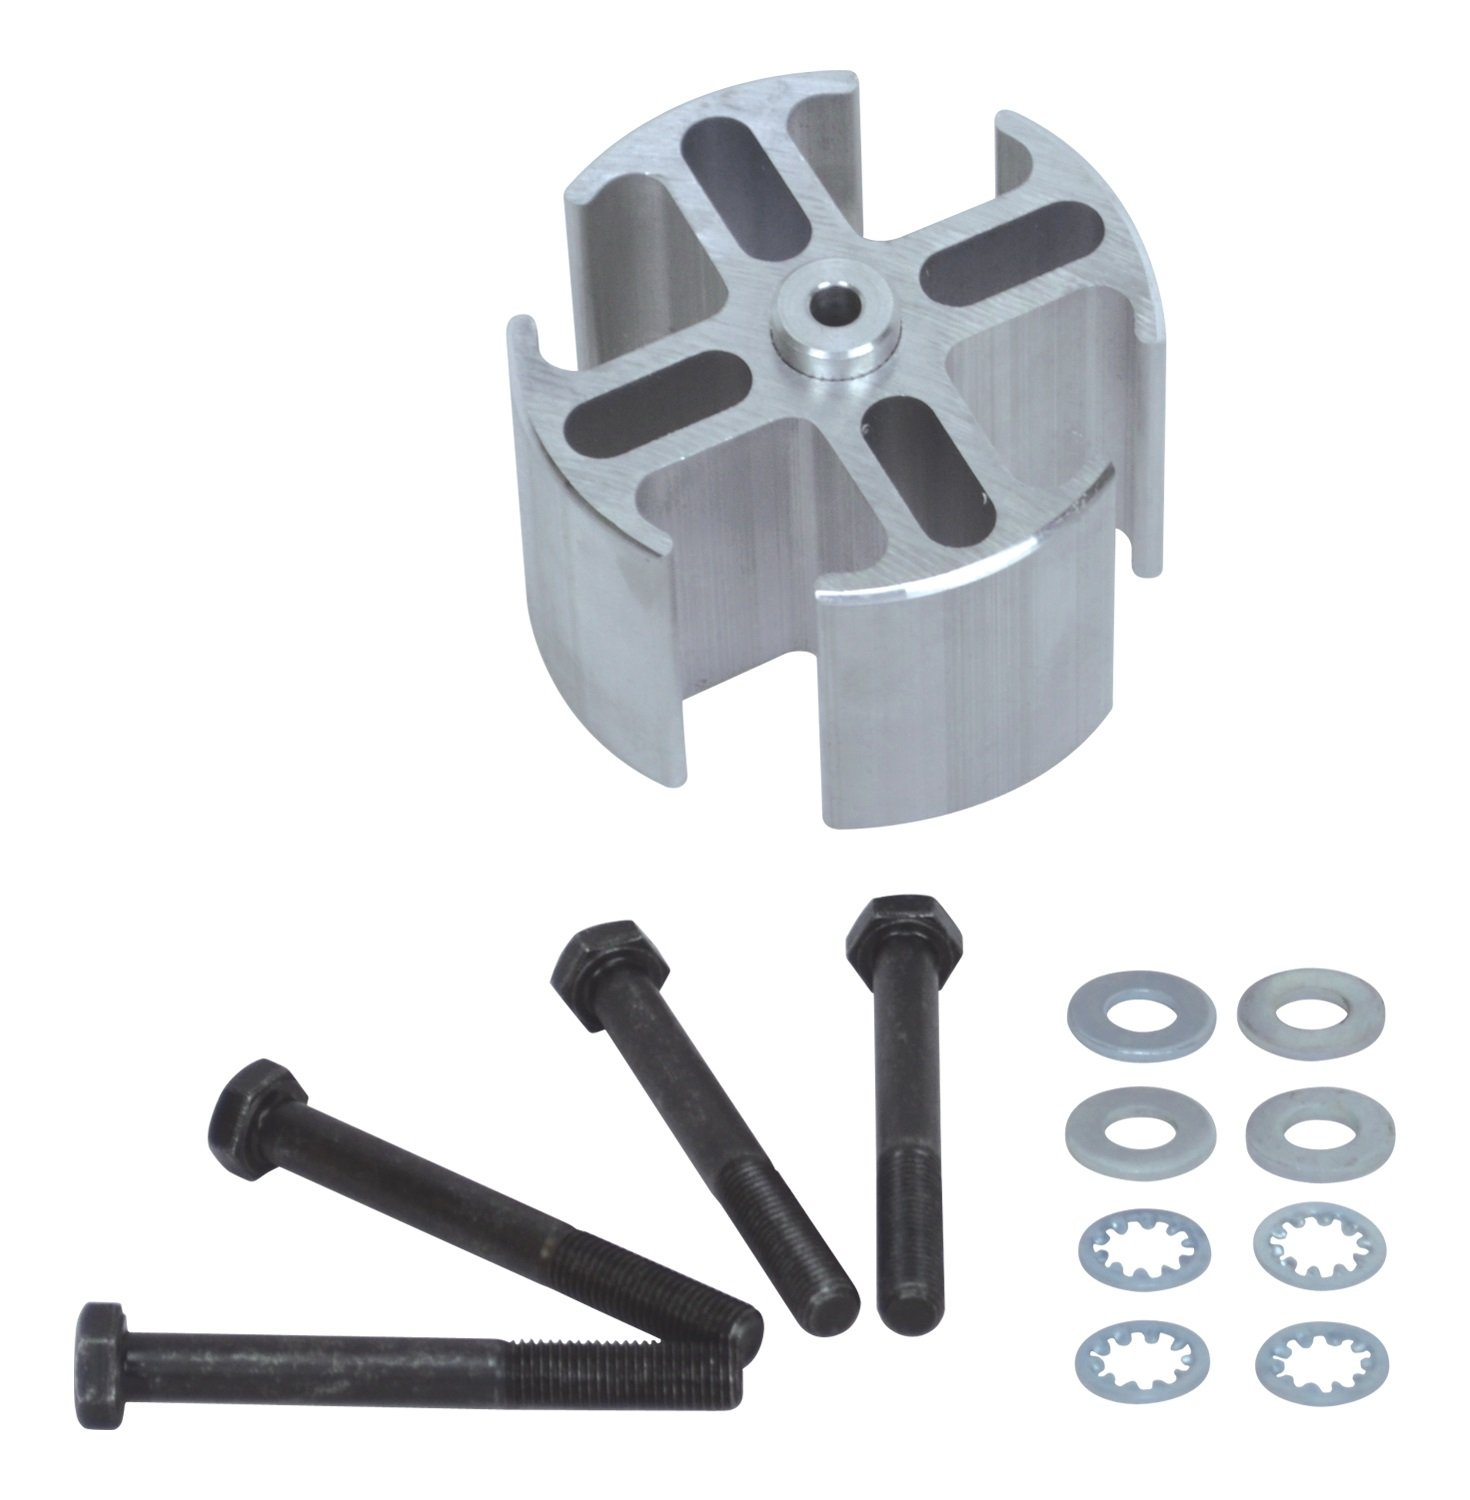 Flex-a-lite 14556 Mill Finish 2' Fan Spacer Kit